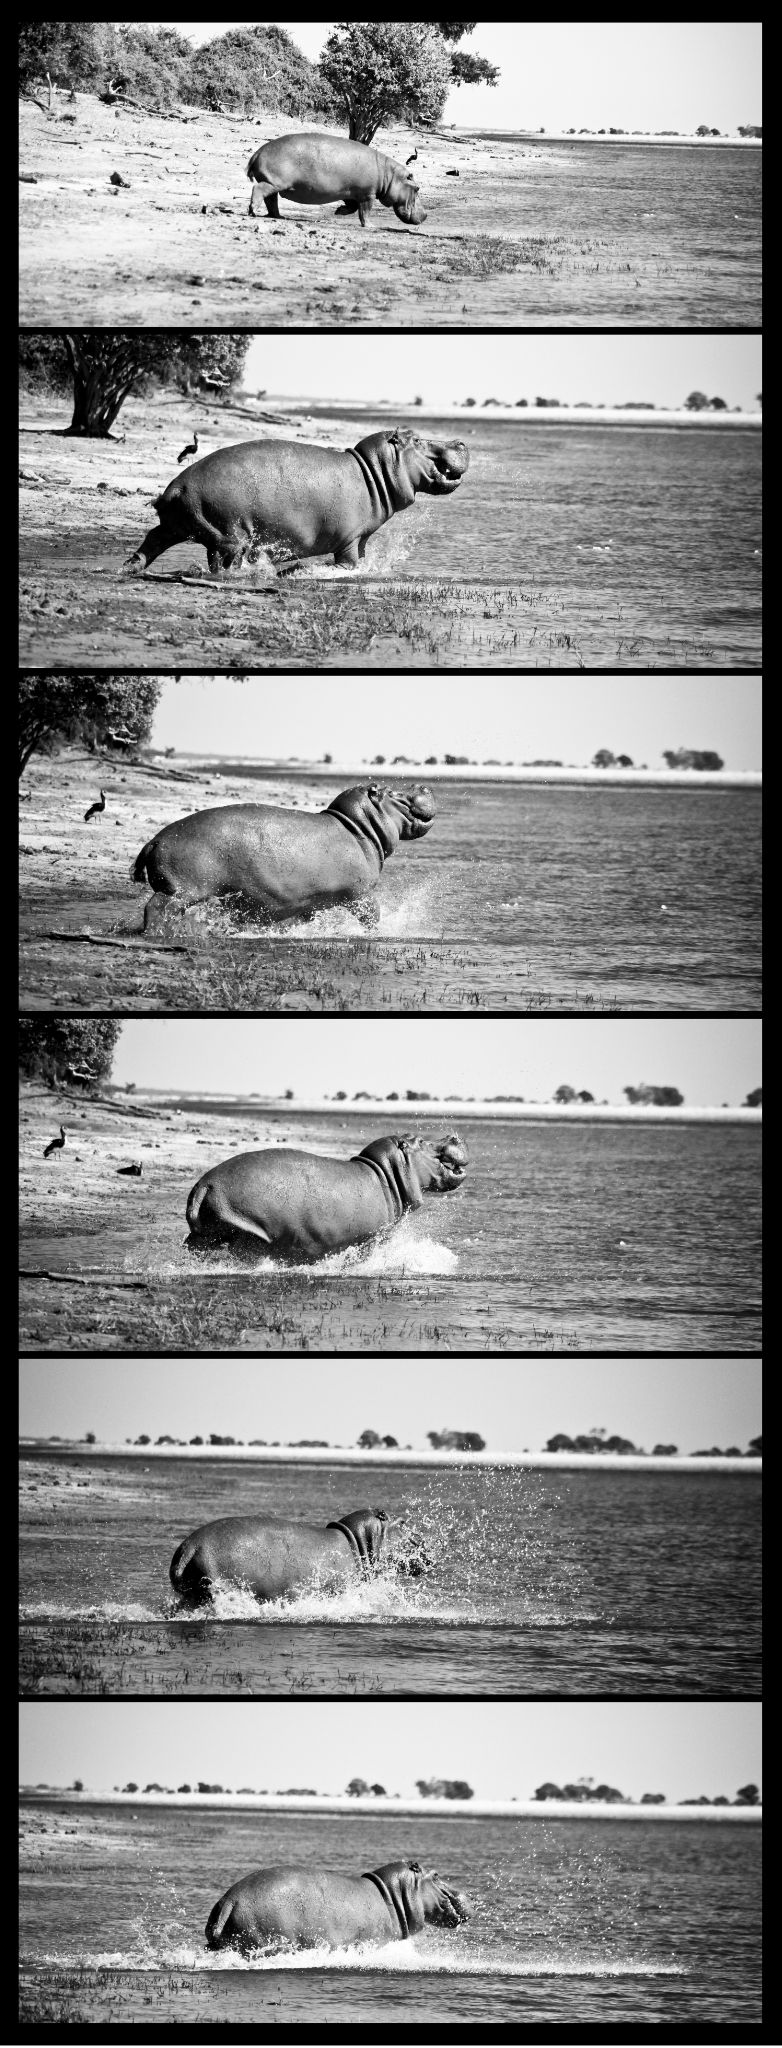 Hippo 2 by Andrew Howes